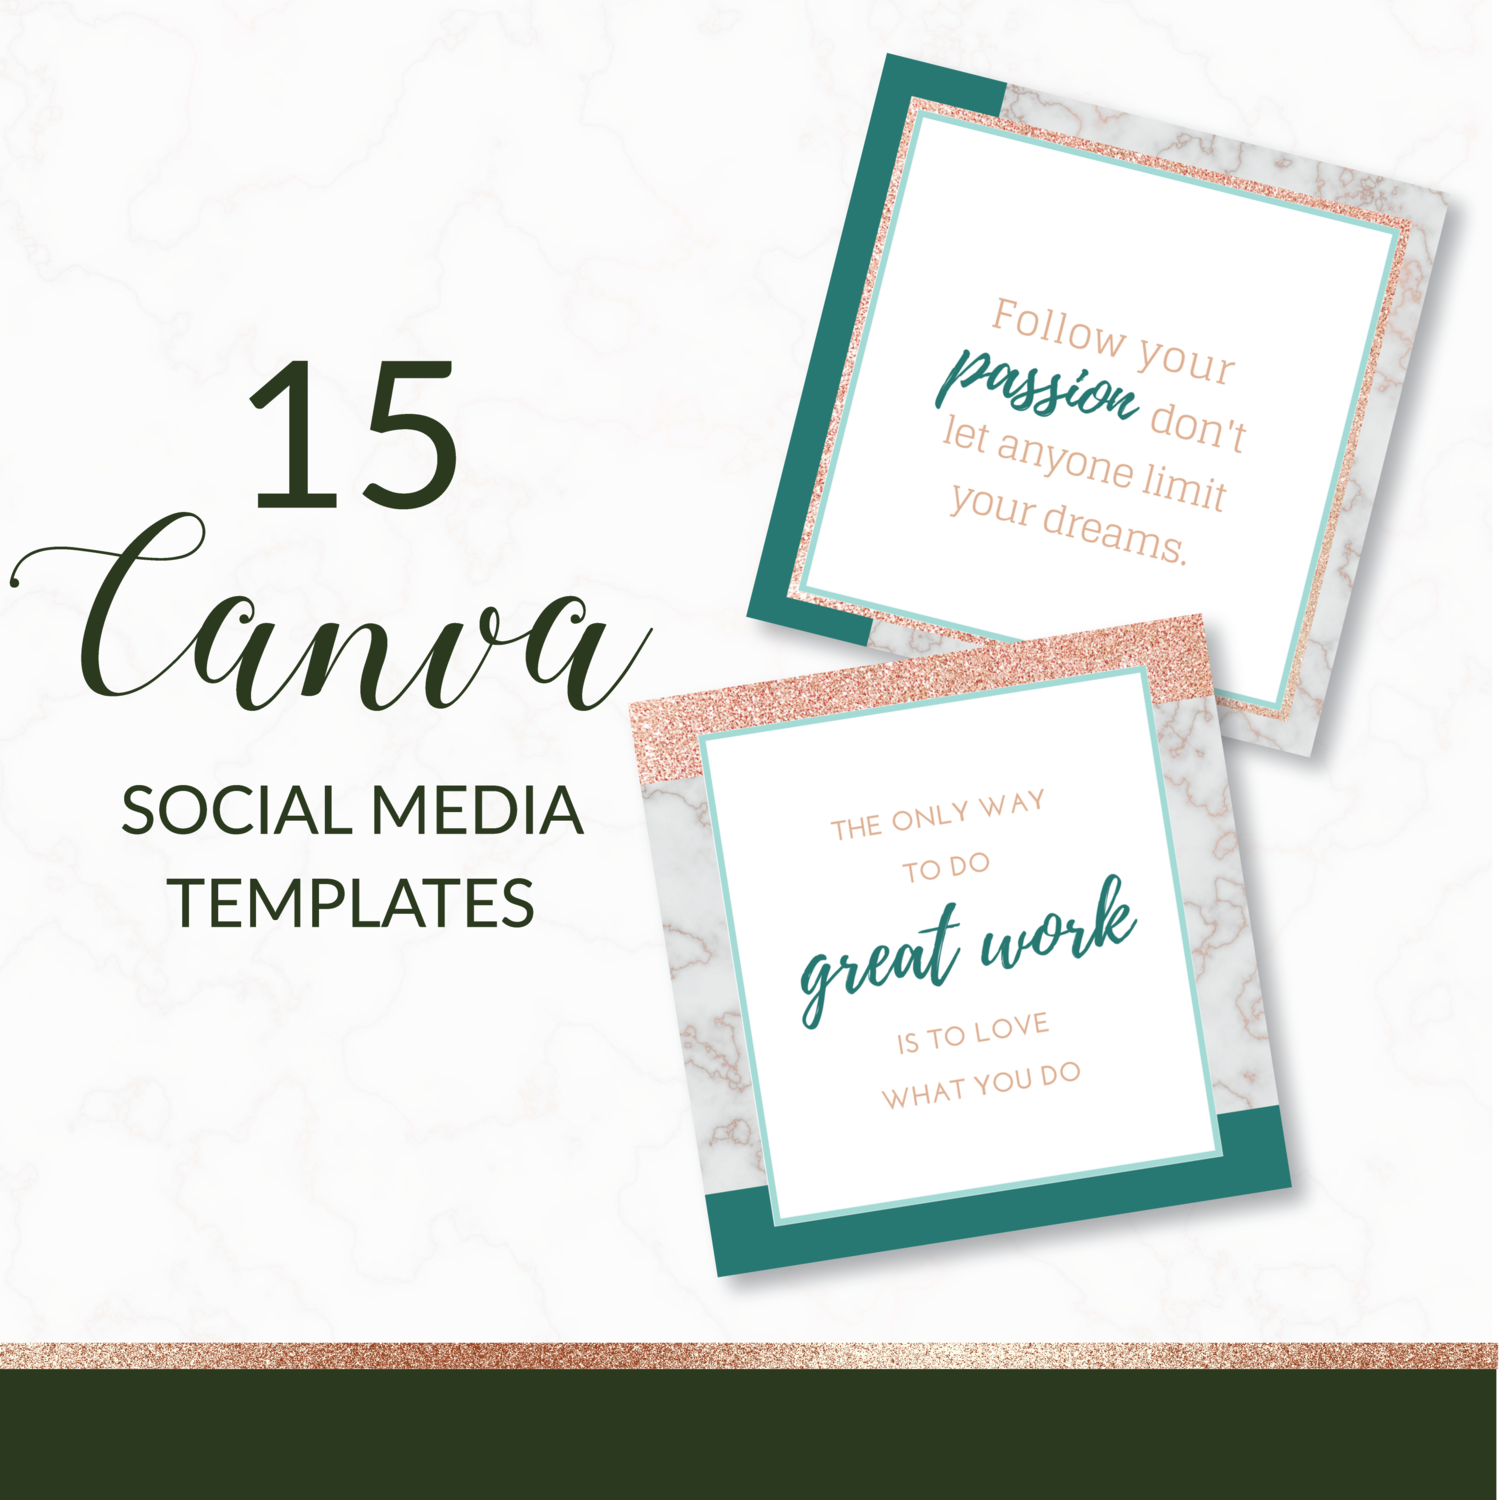 Teal Rose Gold and Marble Canva Social Media Templates